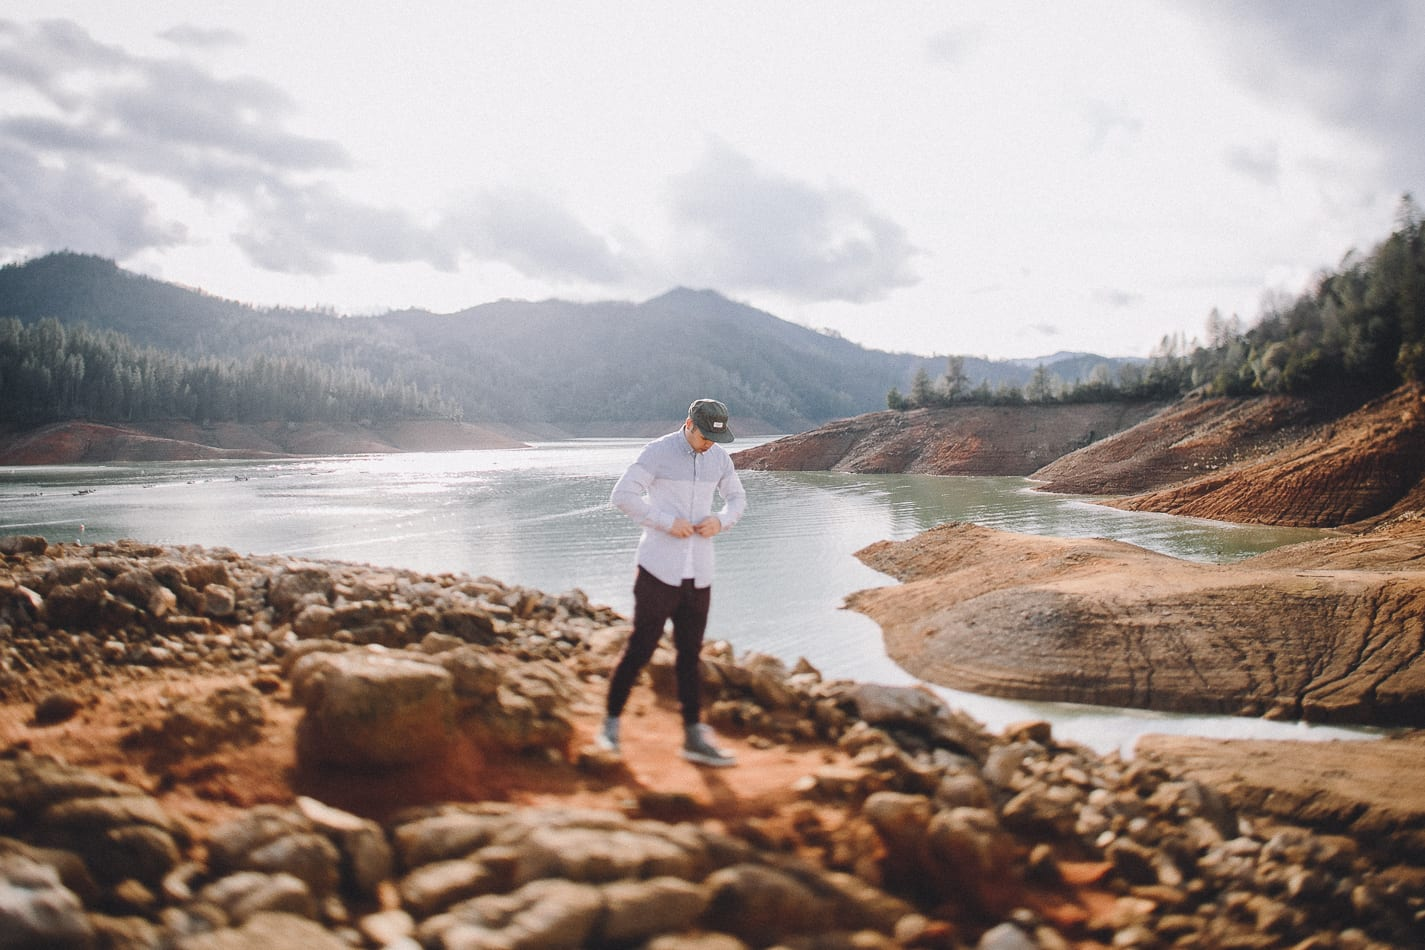 shasta-lake-portrait-lifestyle-photo-7